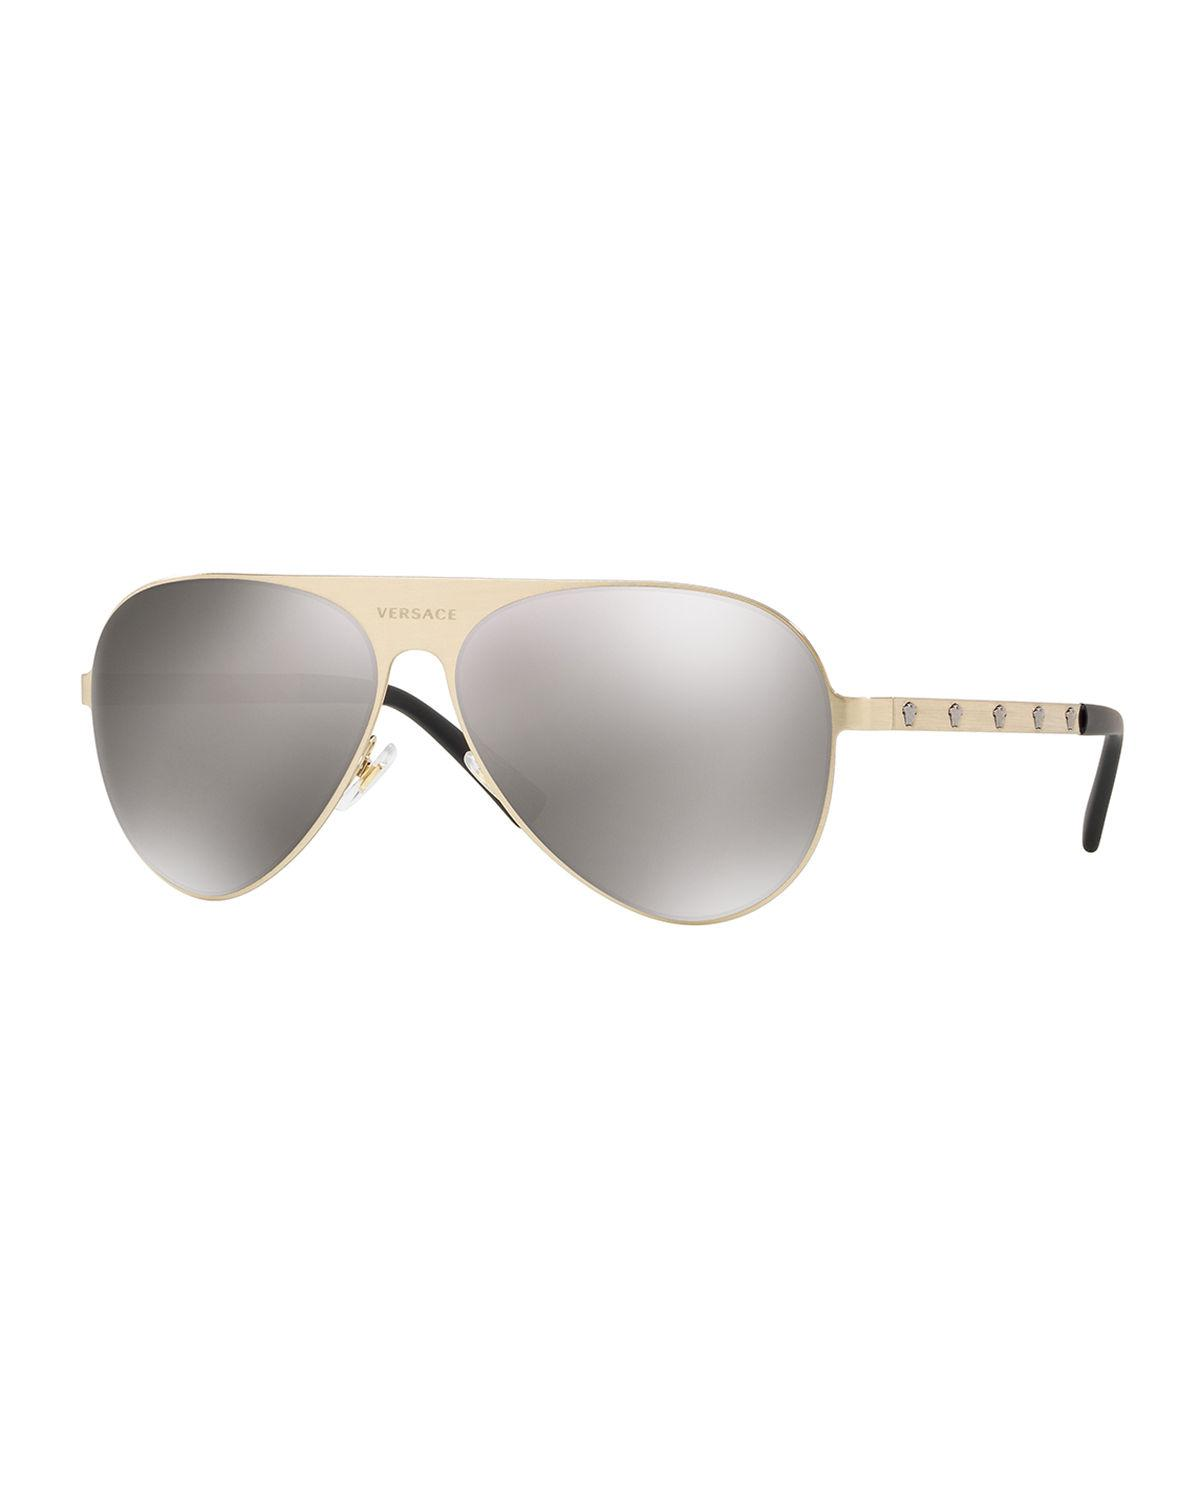 d56dd166e4 Lyst - Versace Monochromatic Aviator Sunglasses in Gray